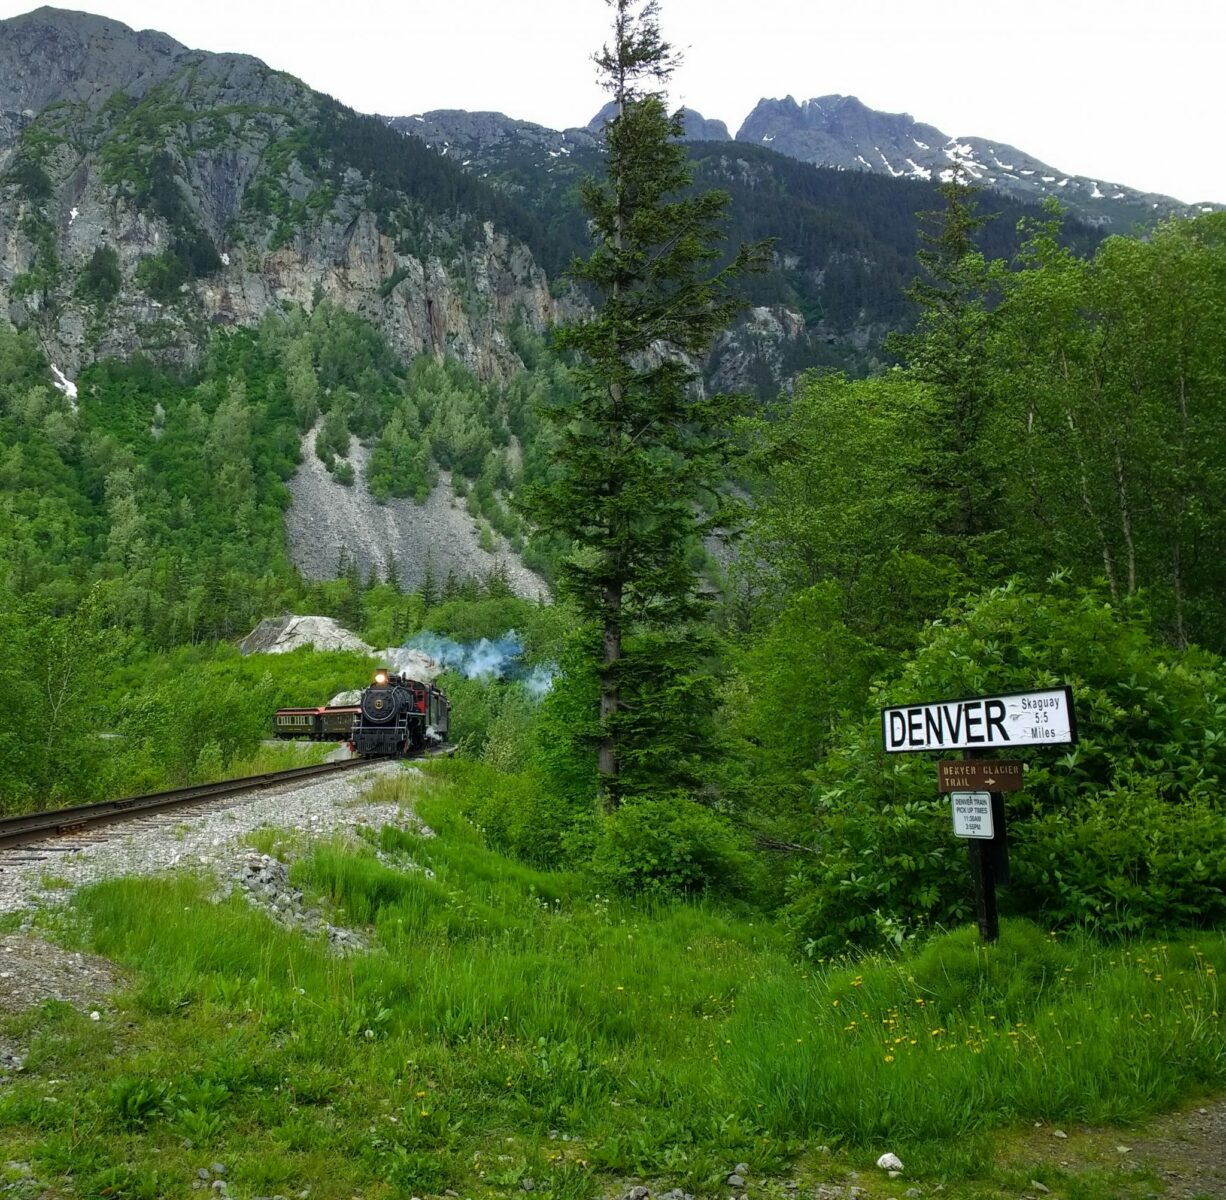 A steam engine coming around a corner with a train in the remote mountains of white pass near Skagway alaska. There is a sign in the forest next to the tracks that says Denver Glacier Trail and Denver - Skagway 5.5 miles